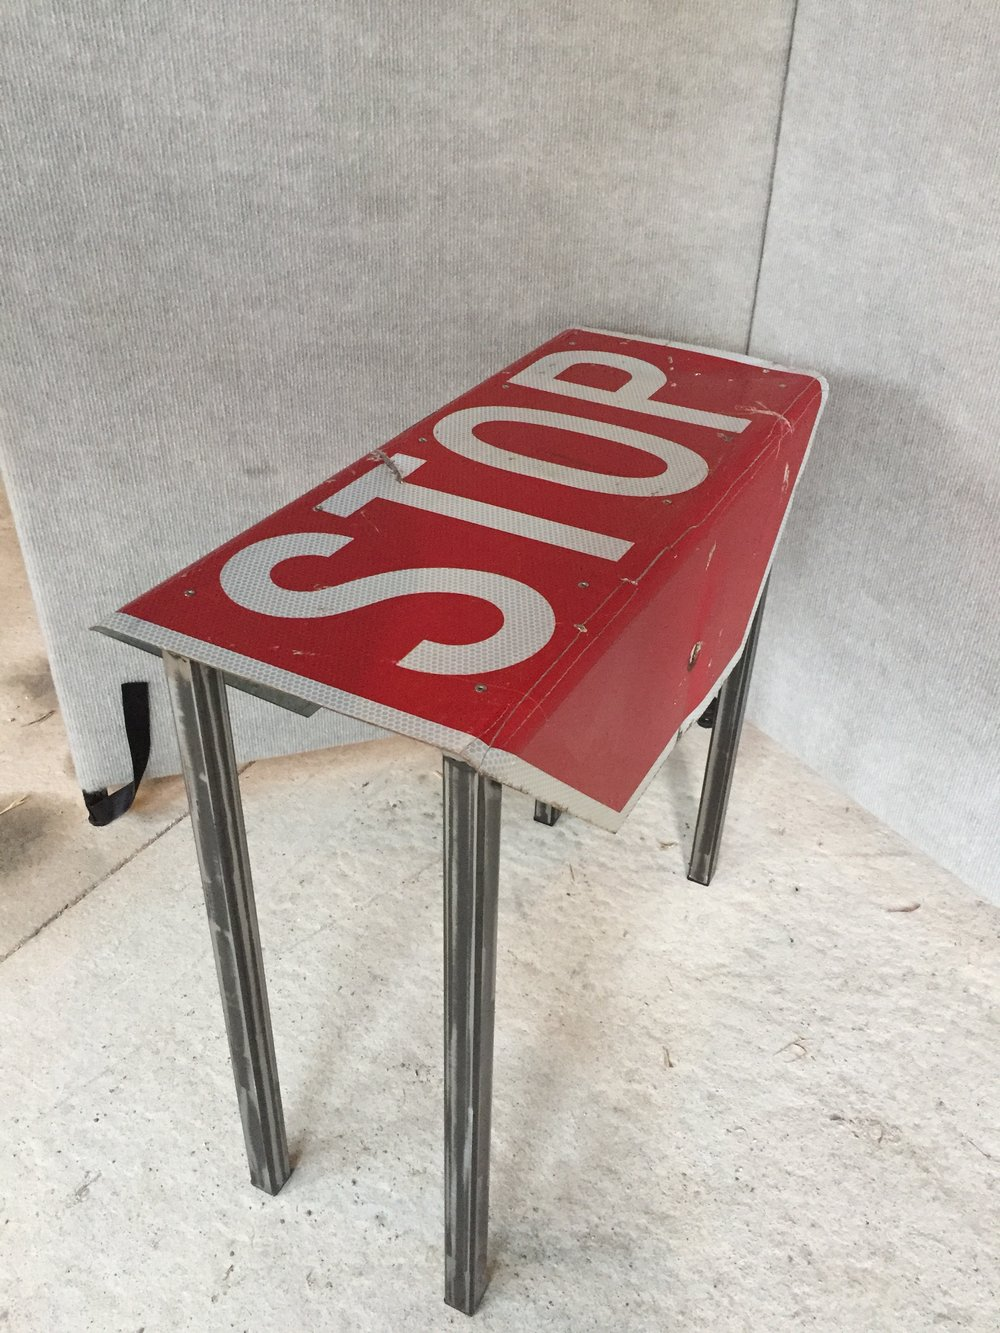 Decommissioned Stop Sign makes a great end table.  $250